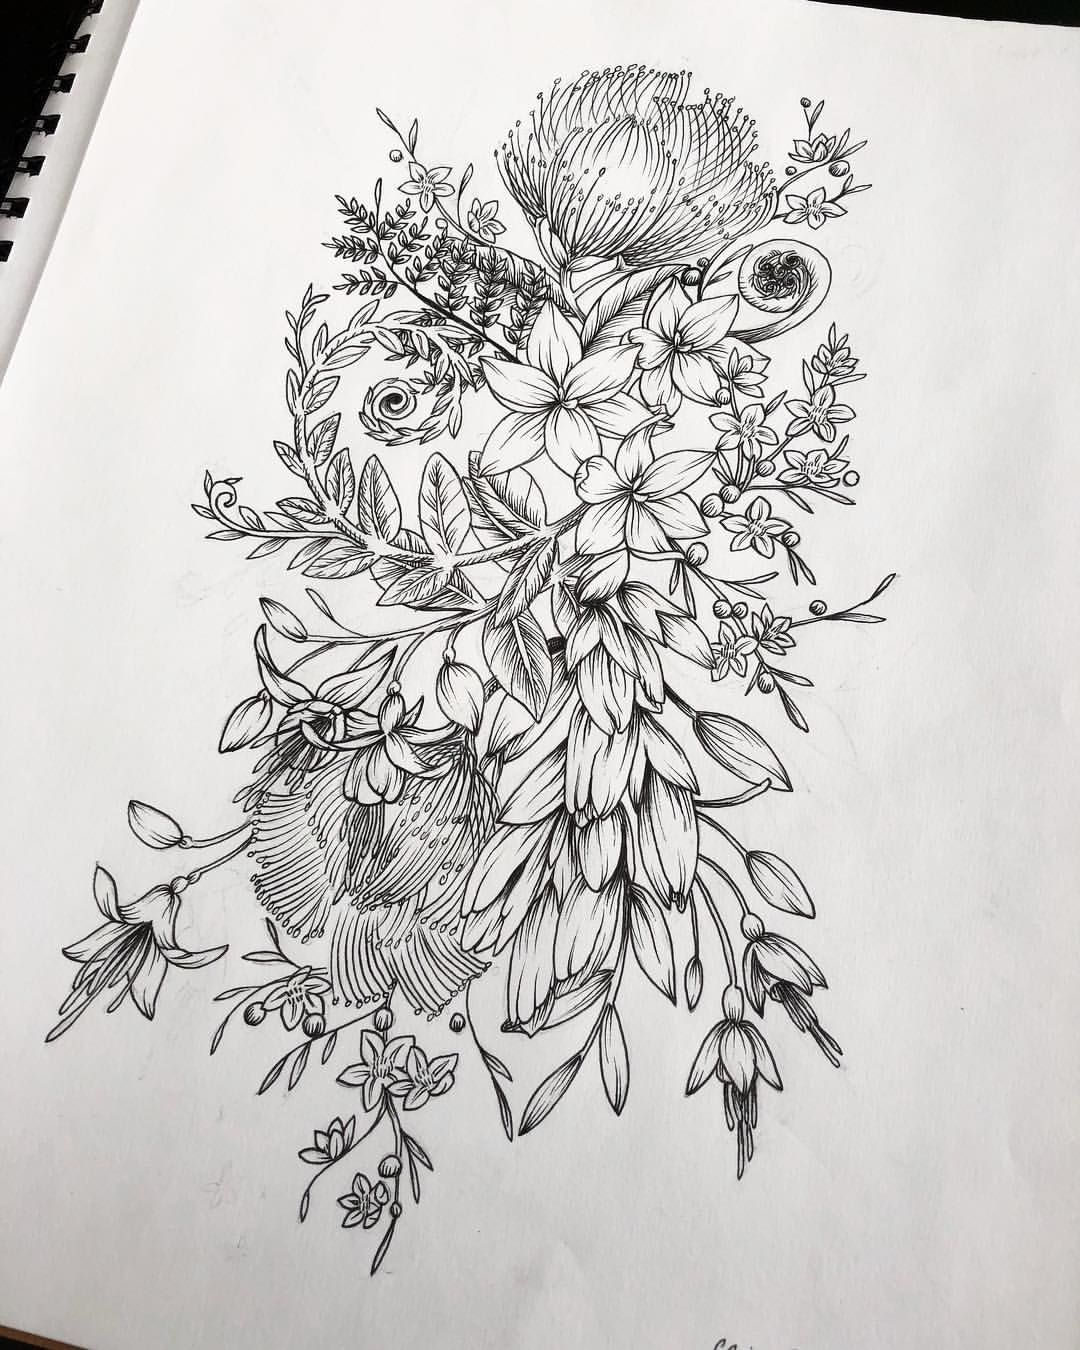 Last custom piece I did with flowers native to New Zealand